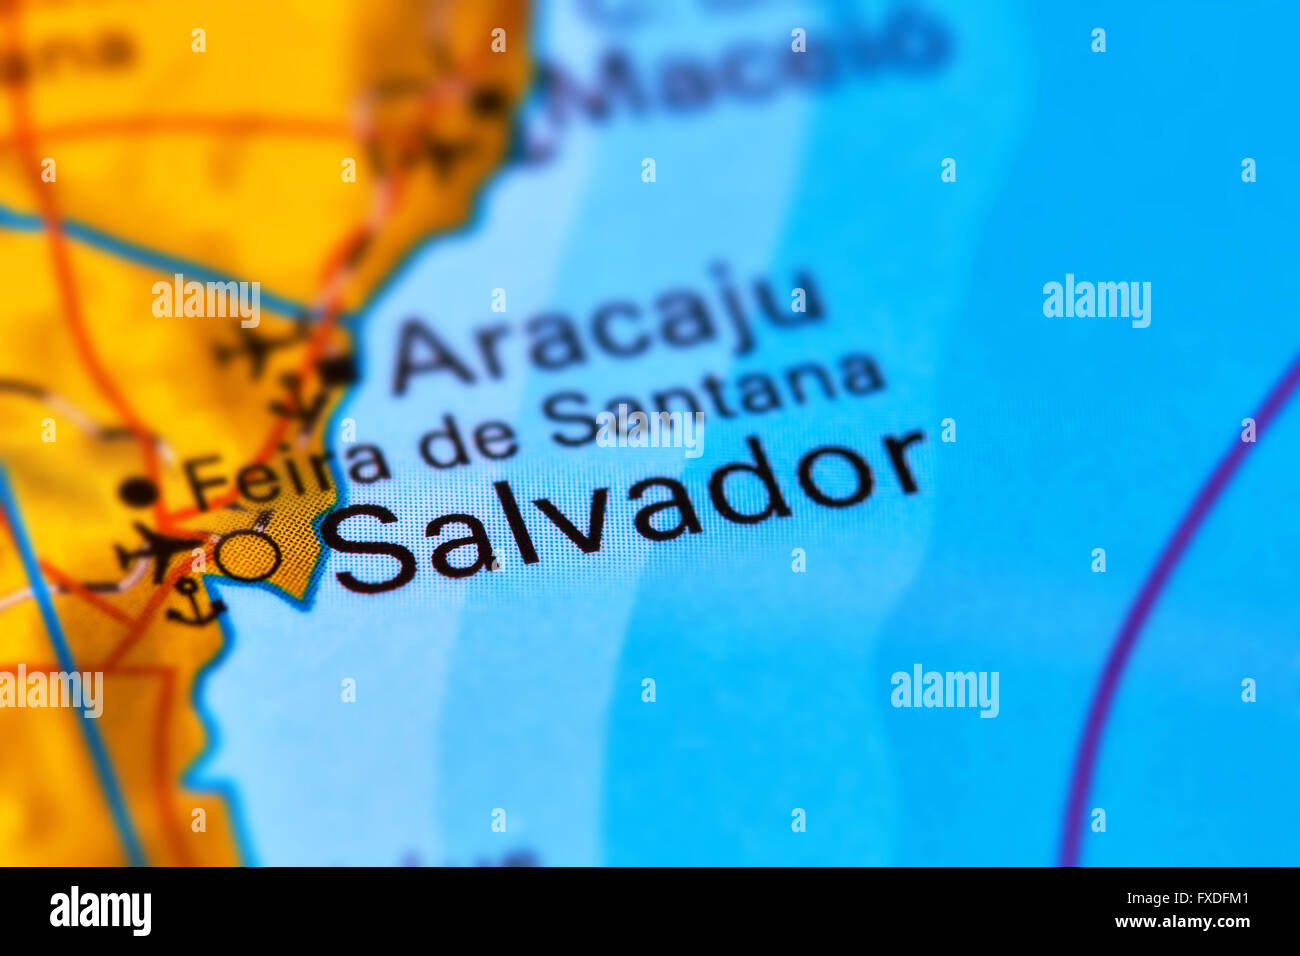 Salvador map stock photos salvador map stock images alamy salvador city in brazil on the world map stock image gumiabroncs Image collections